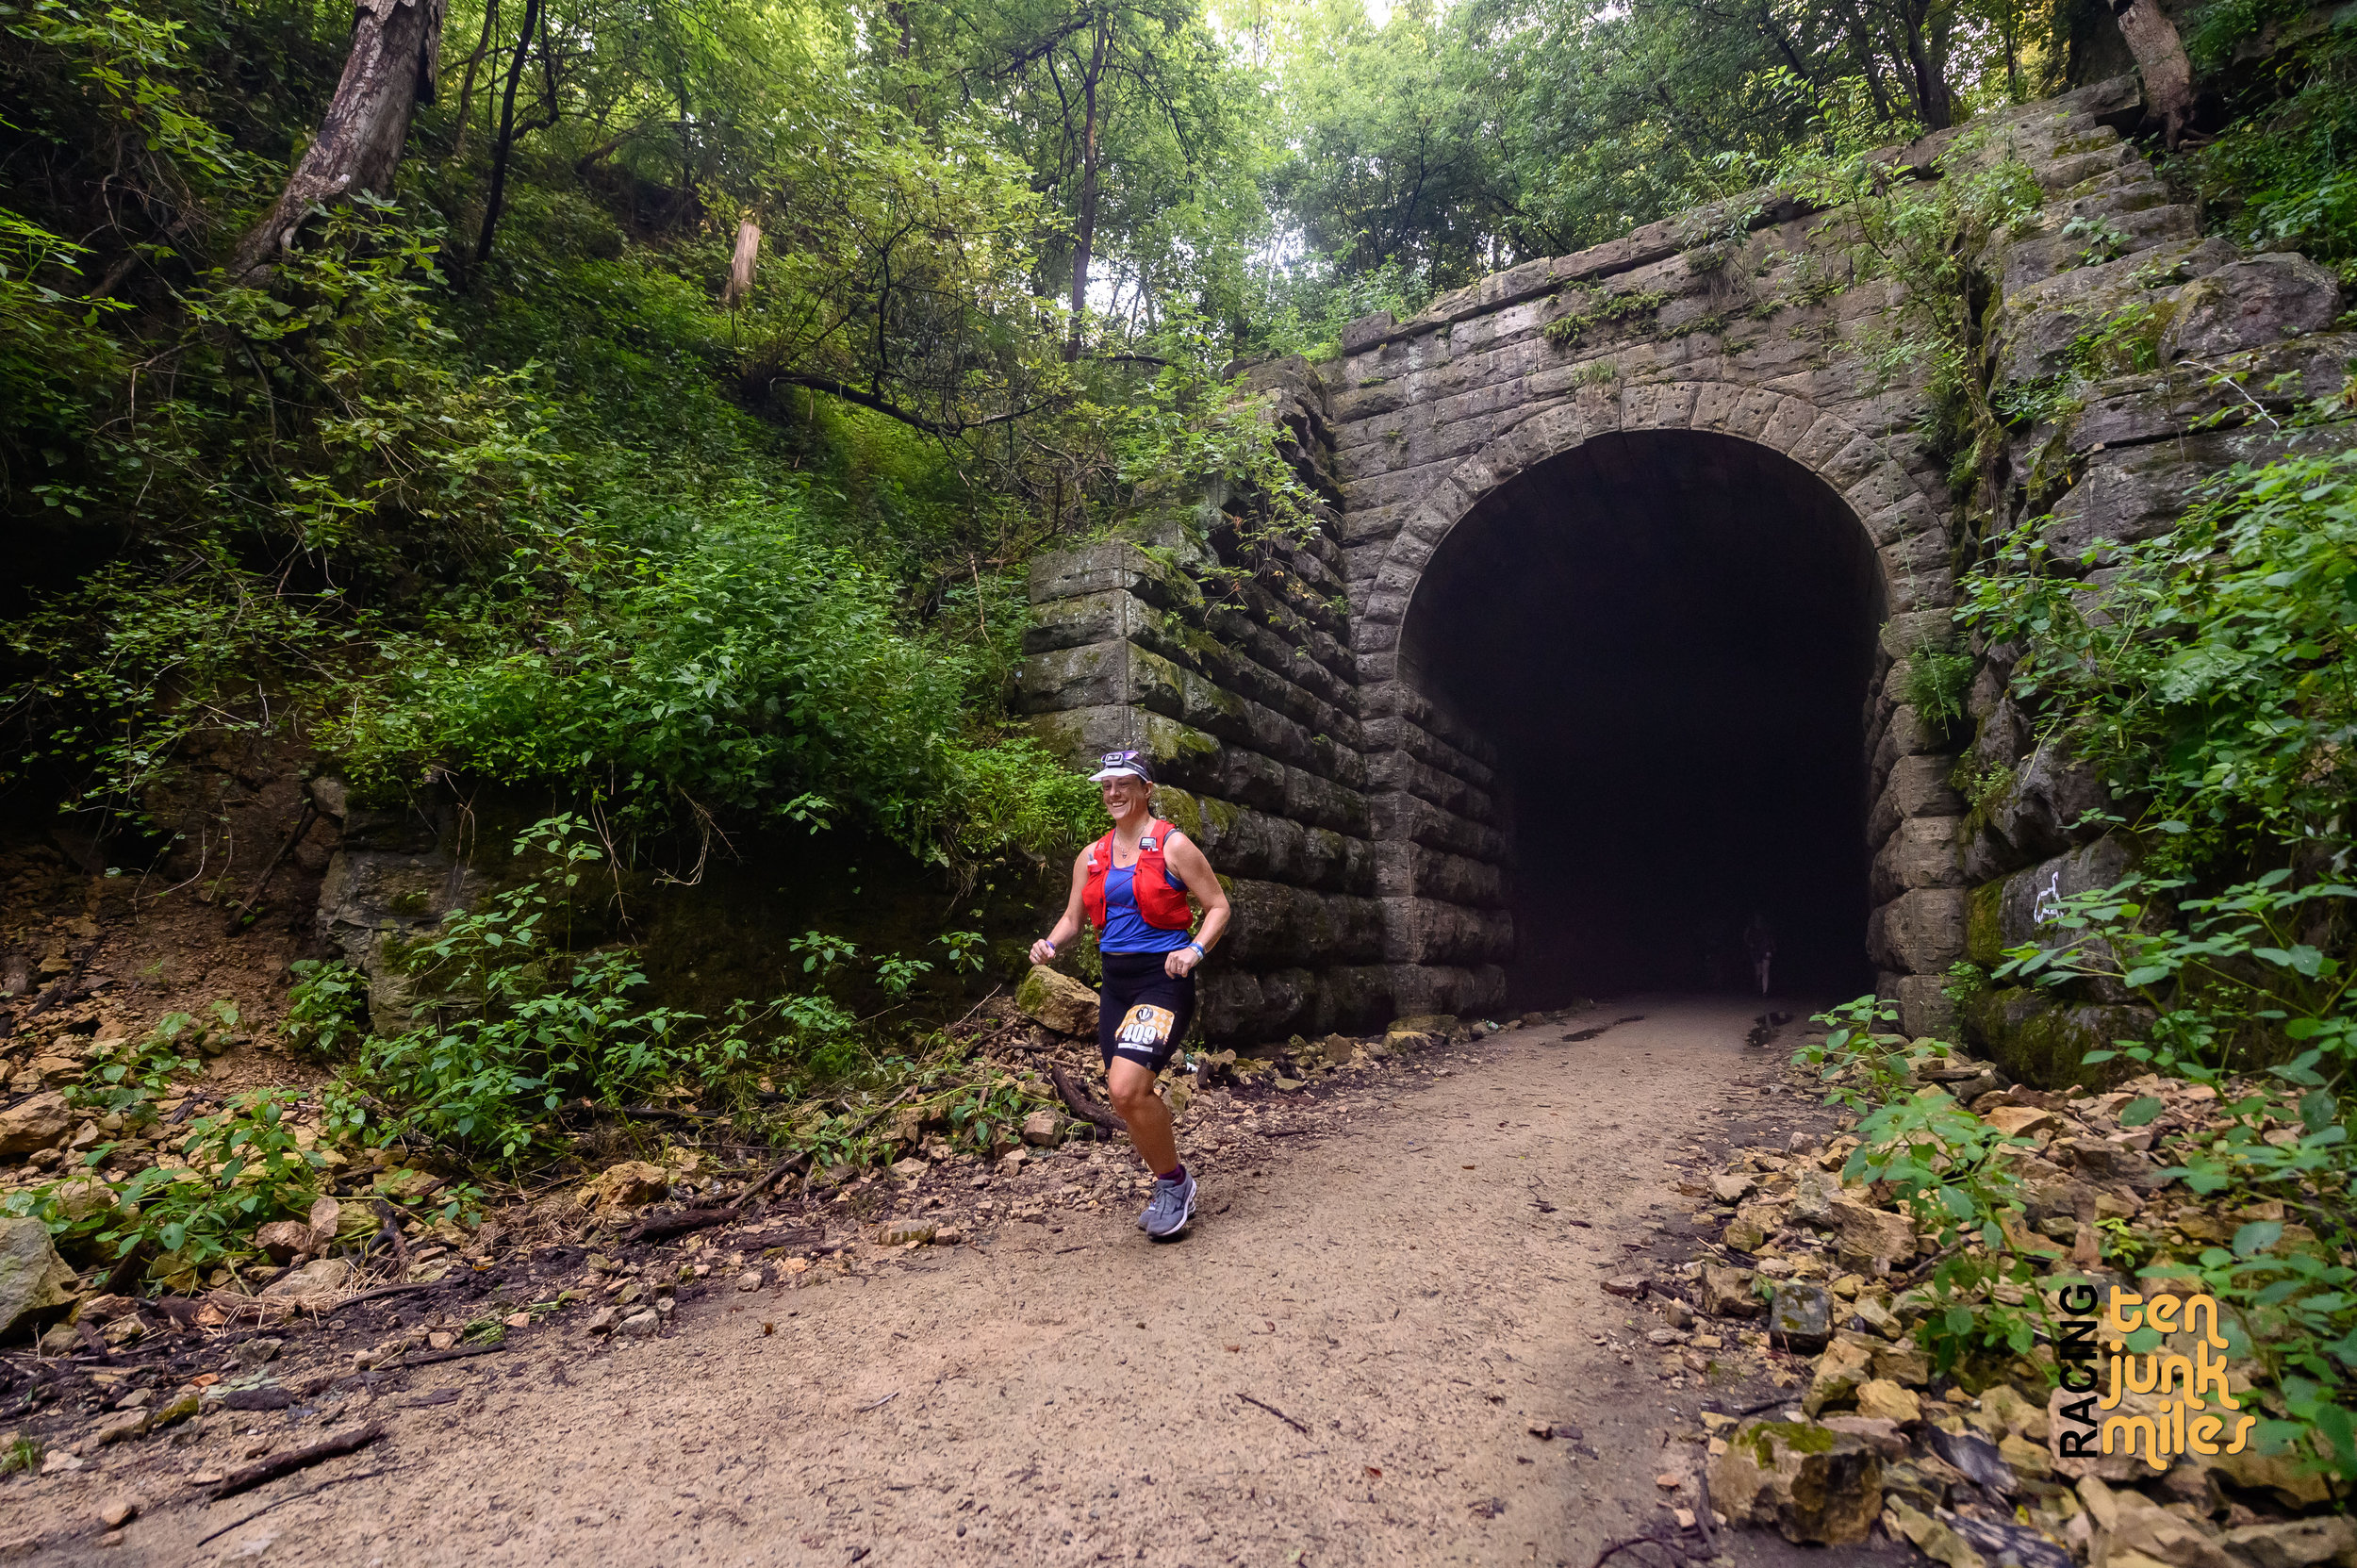 5 miles in, through the tunnel for the first time and headed to aid station 1.